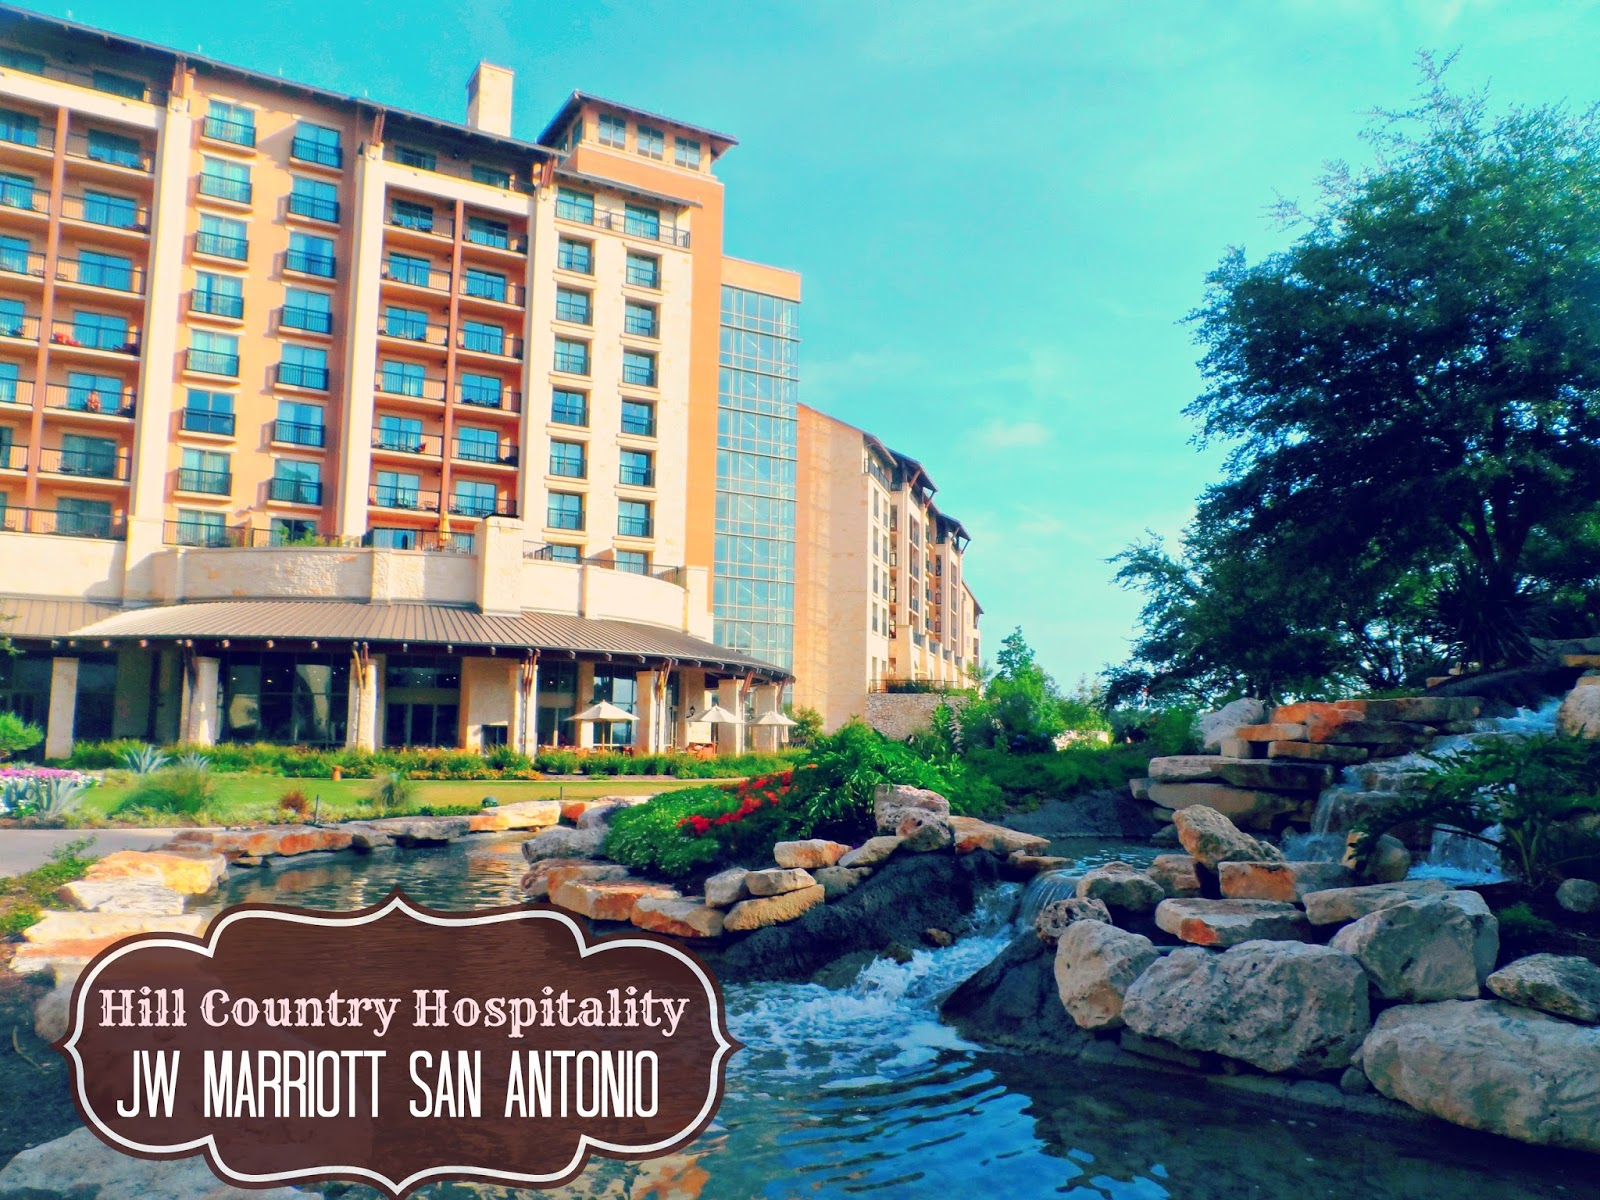 Experience Hill Country Hospitality At The Jw Marriott San